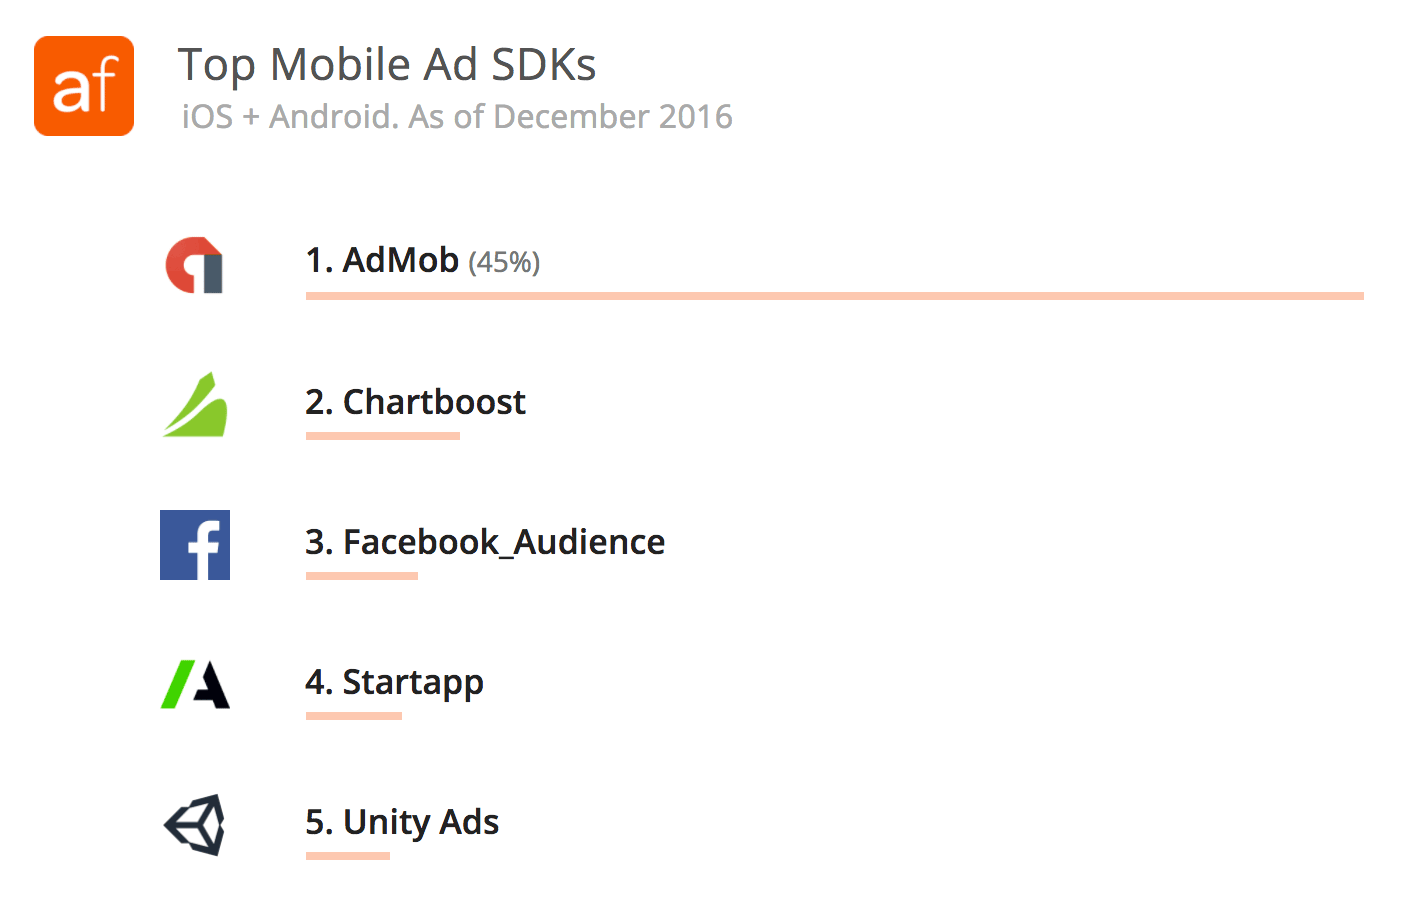 Top Mobile Ad SDKs - iOS and Android